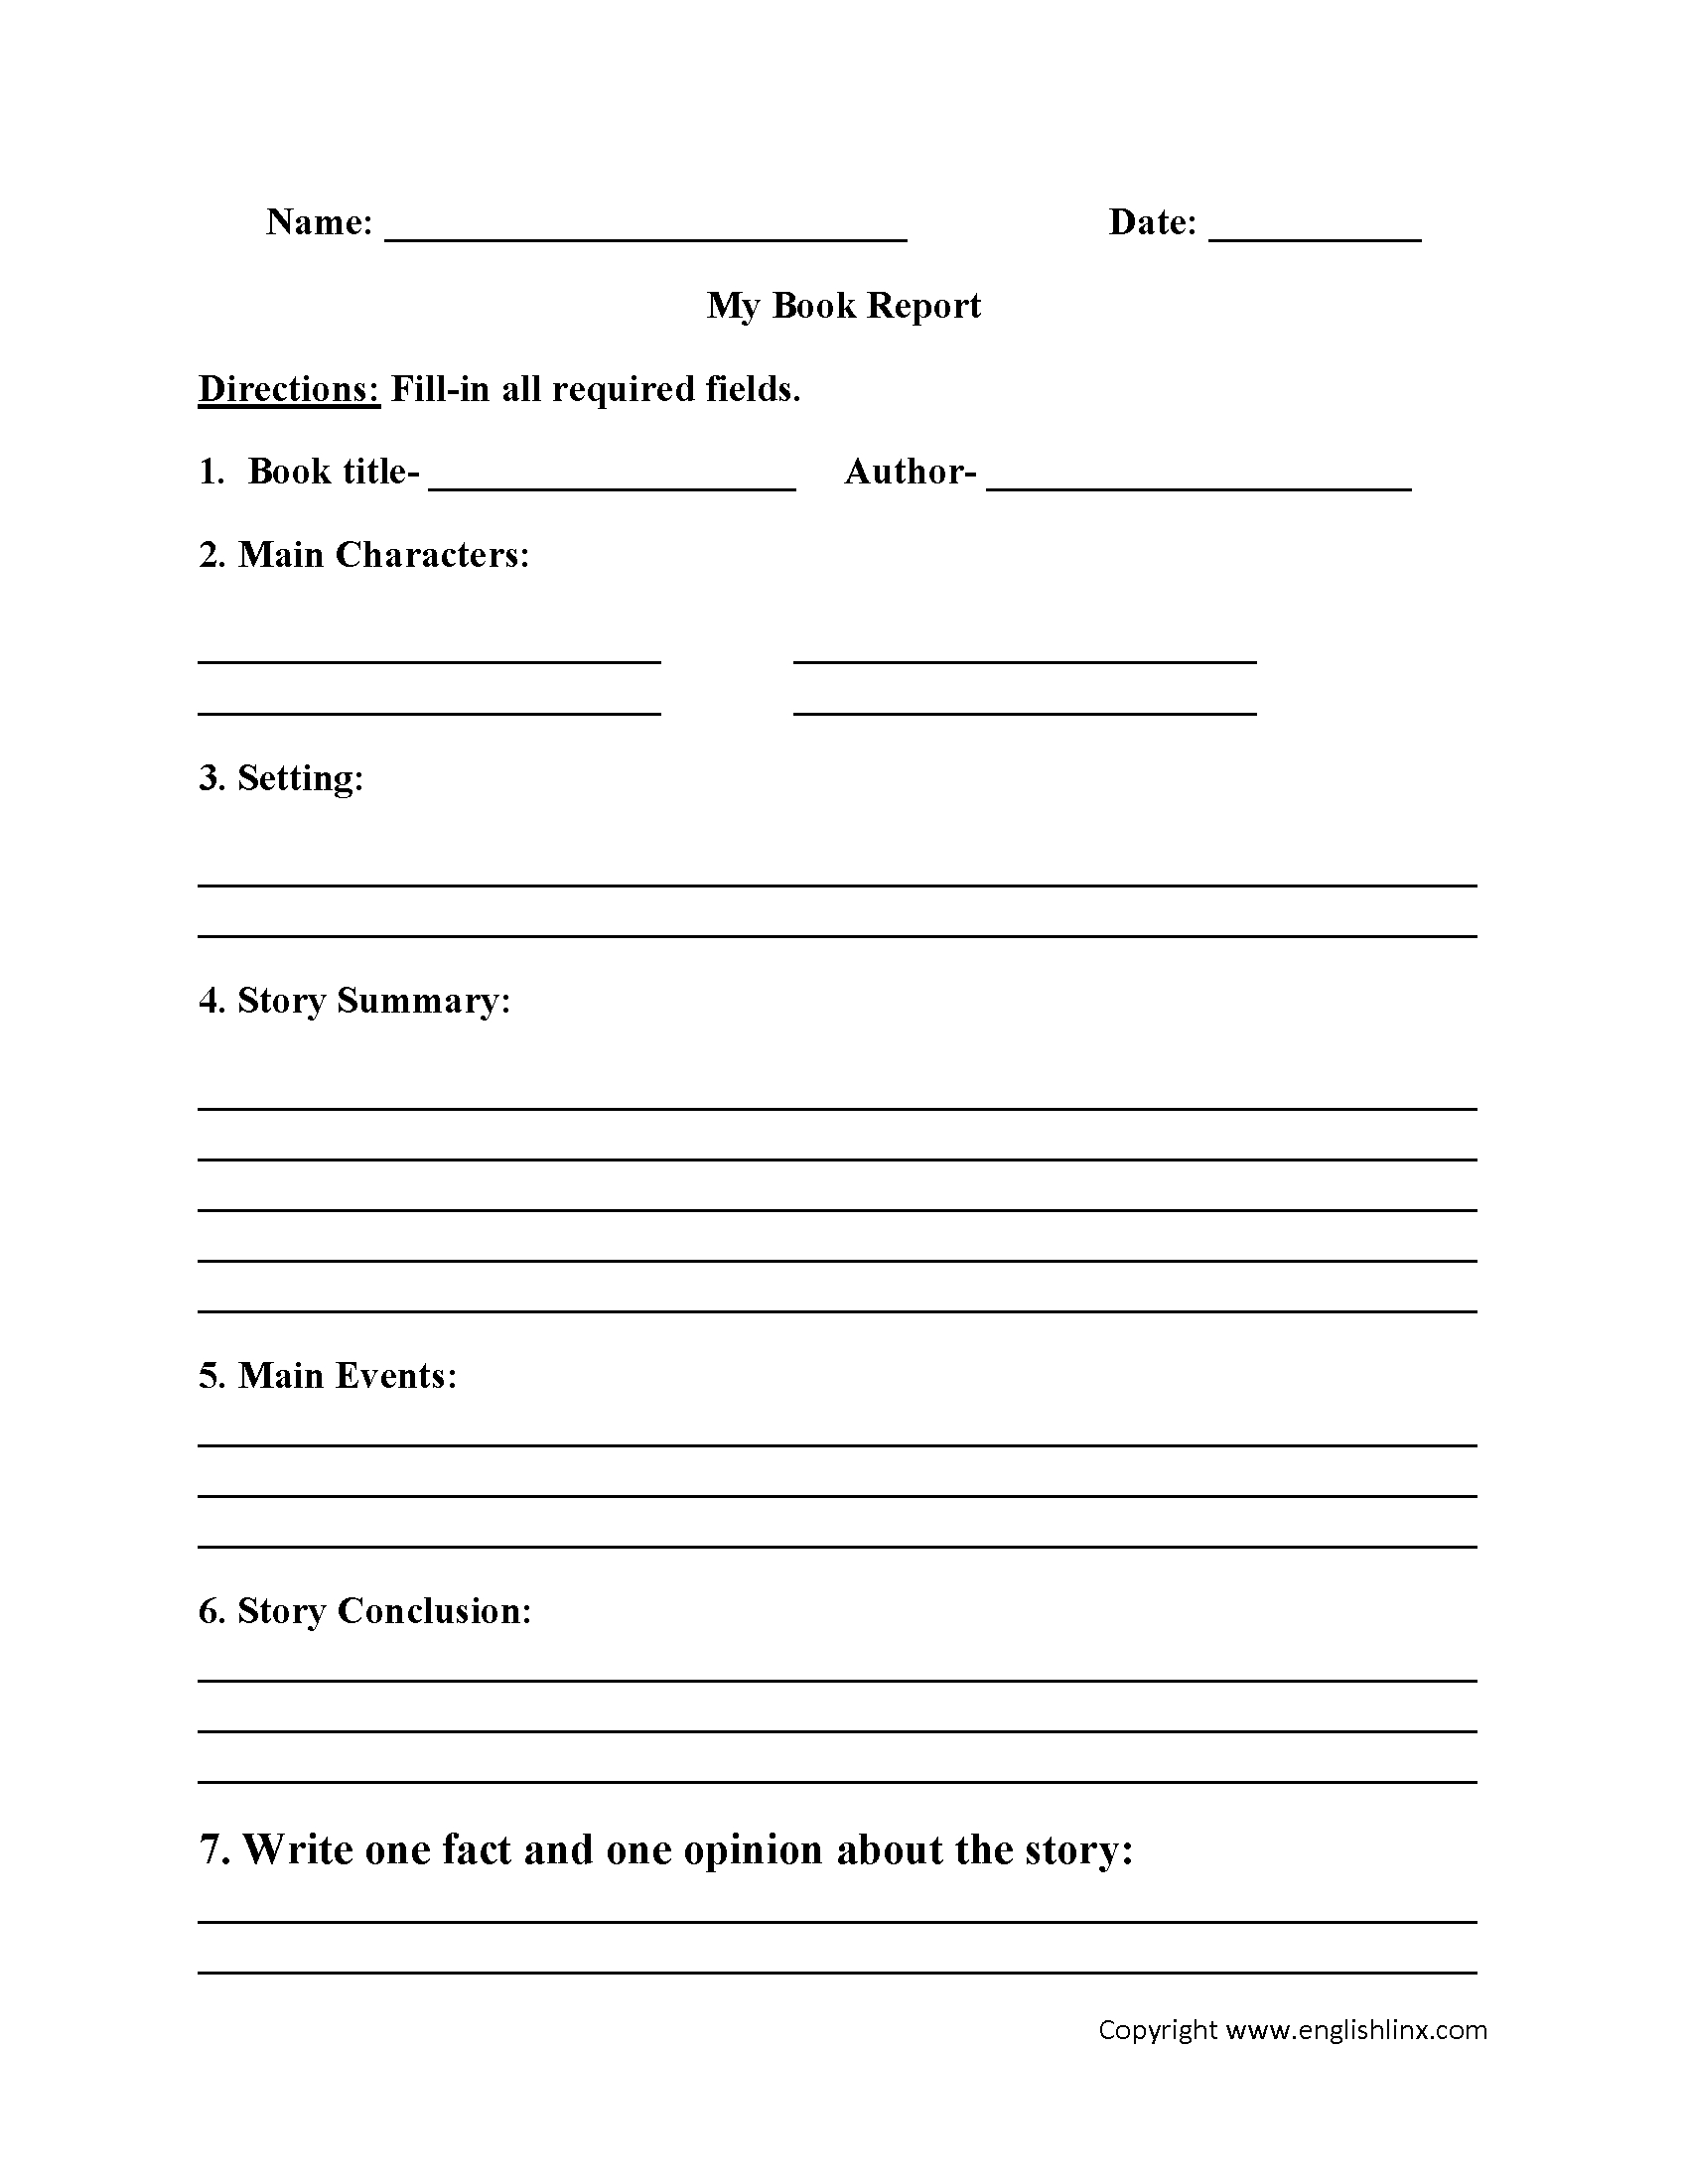 Englishlinx | Book Report Worksheets - Free Printable Book Report Forms